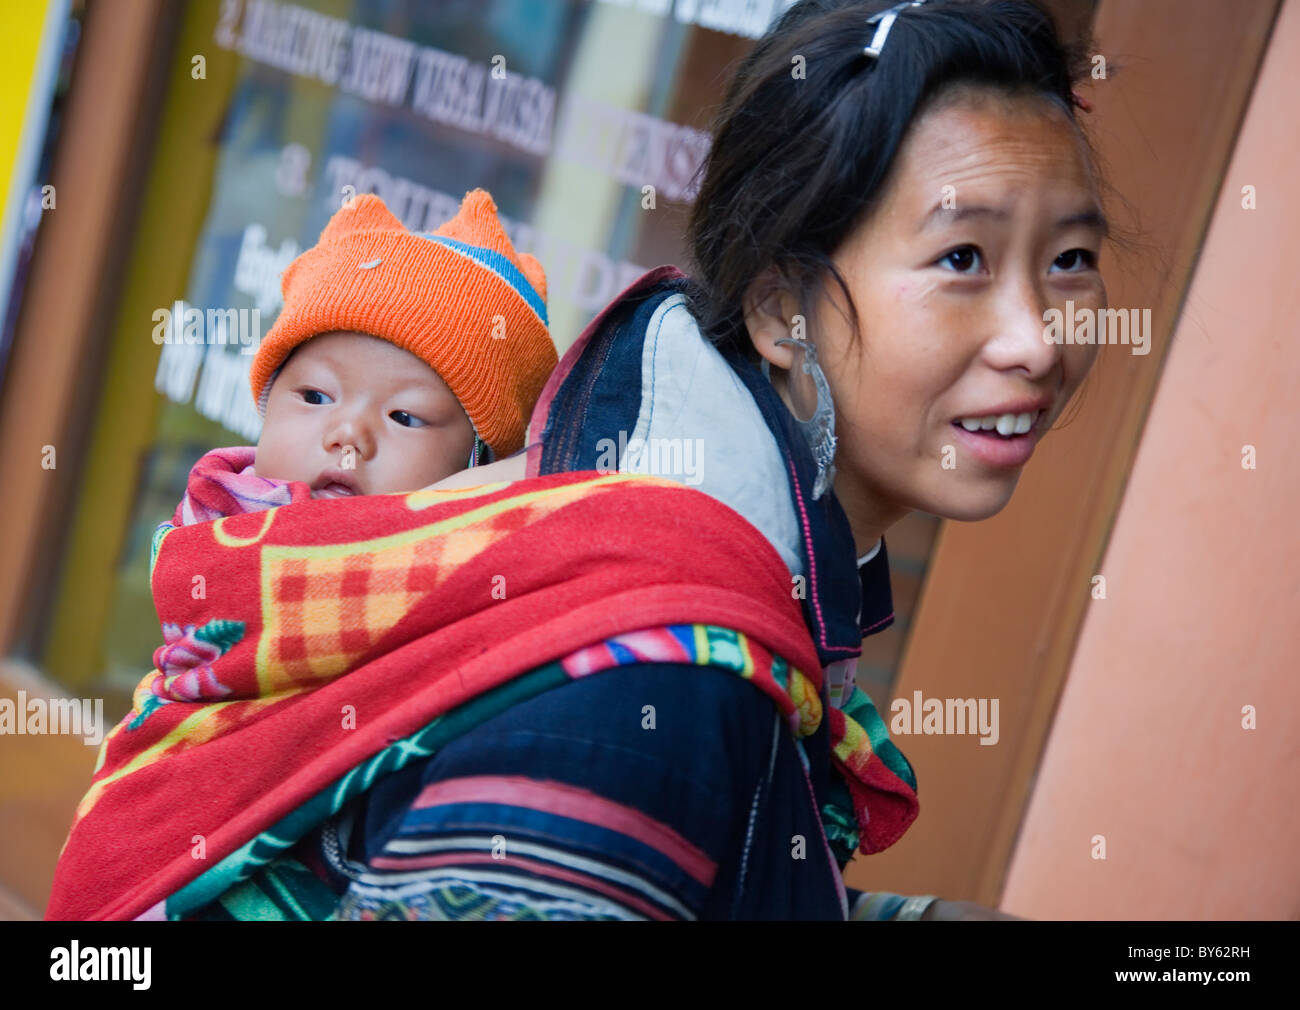 black hmong ethnic woman with a baby. Sapa, Lao Cai province, Vietnam. - Stock Image